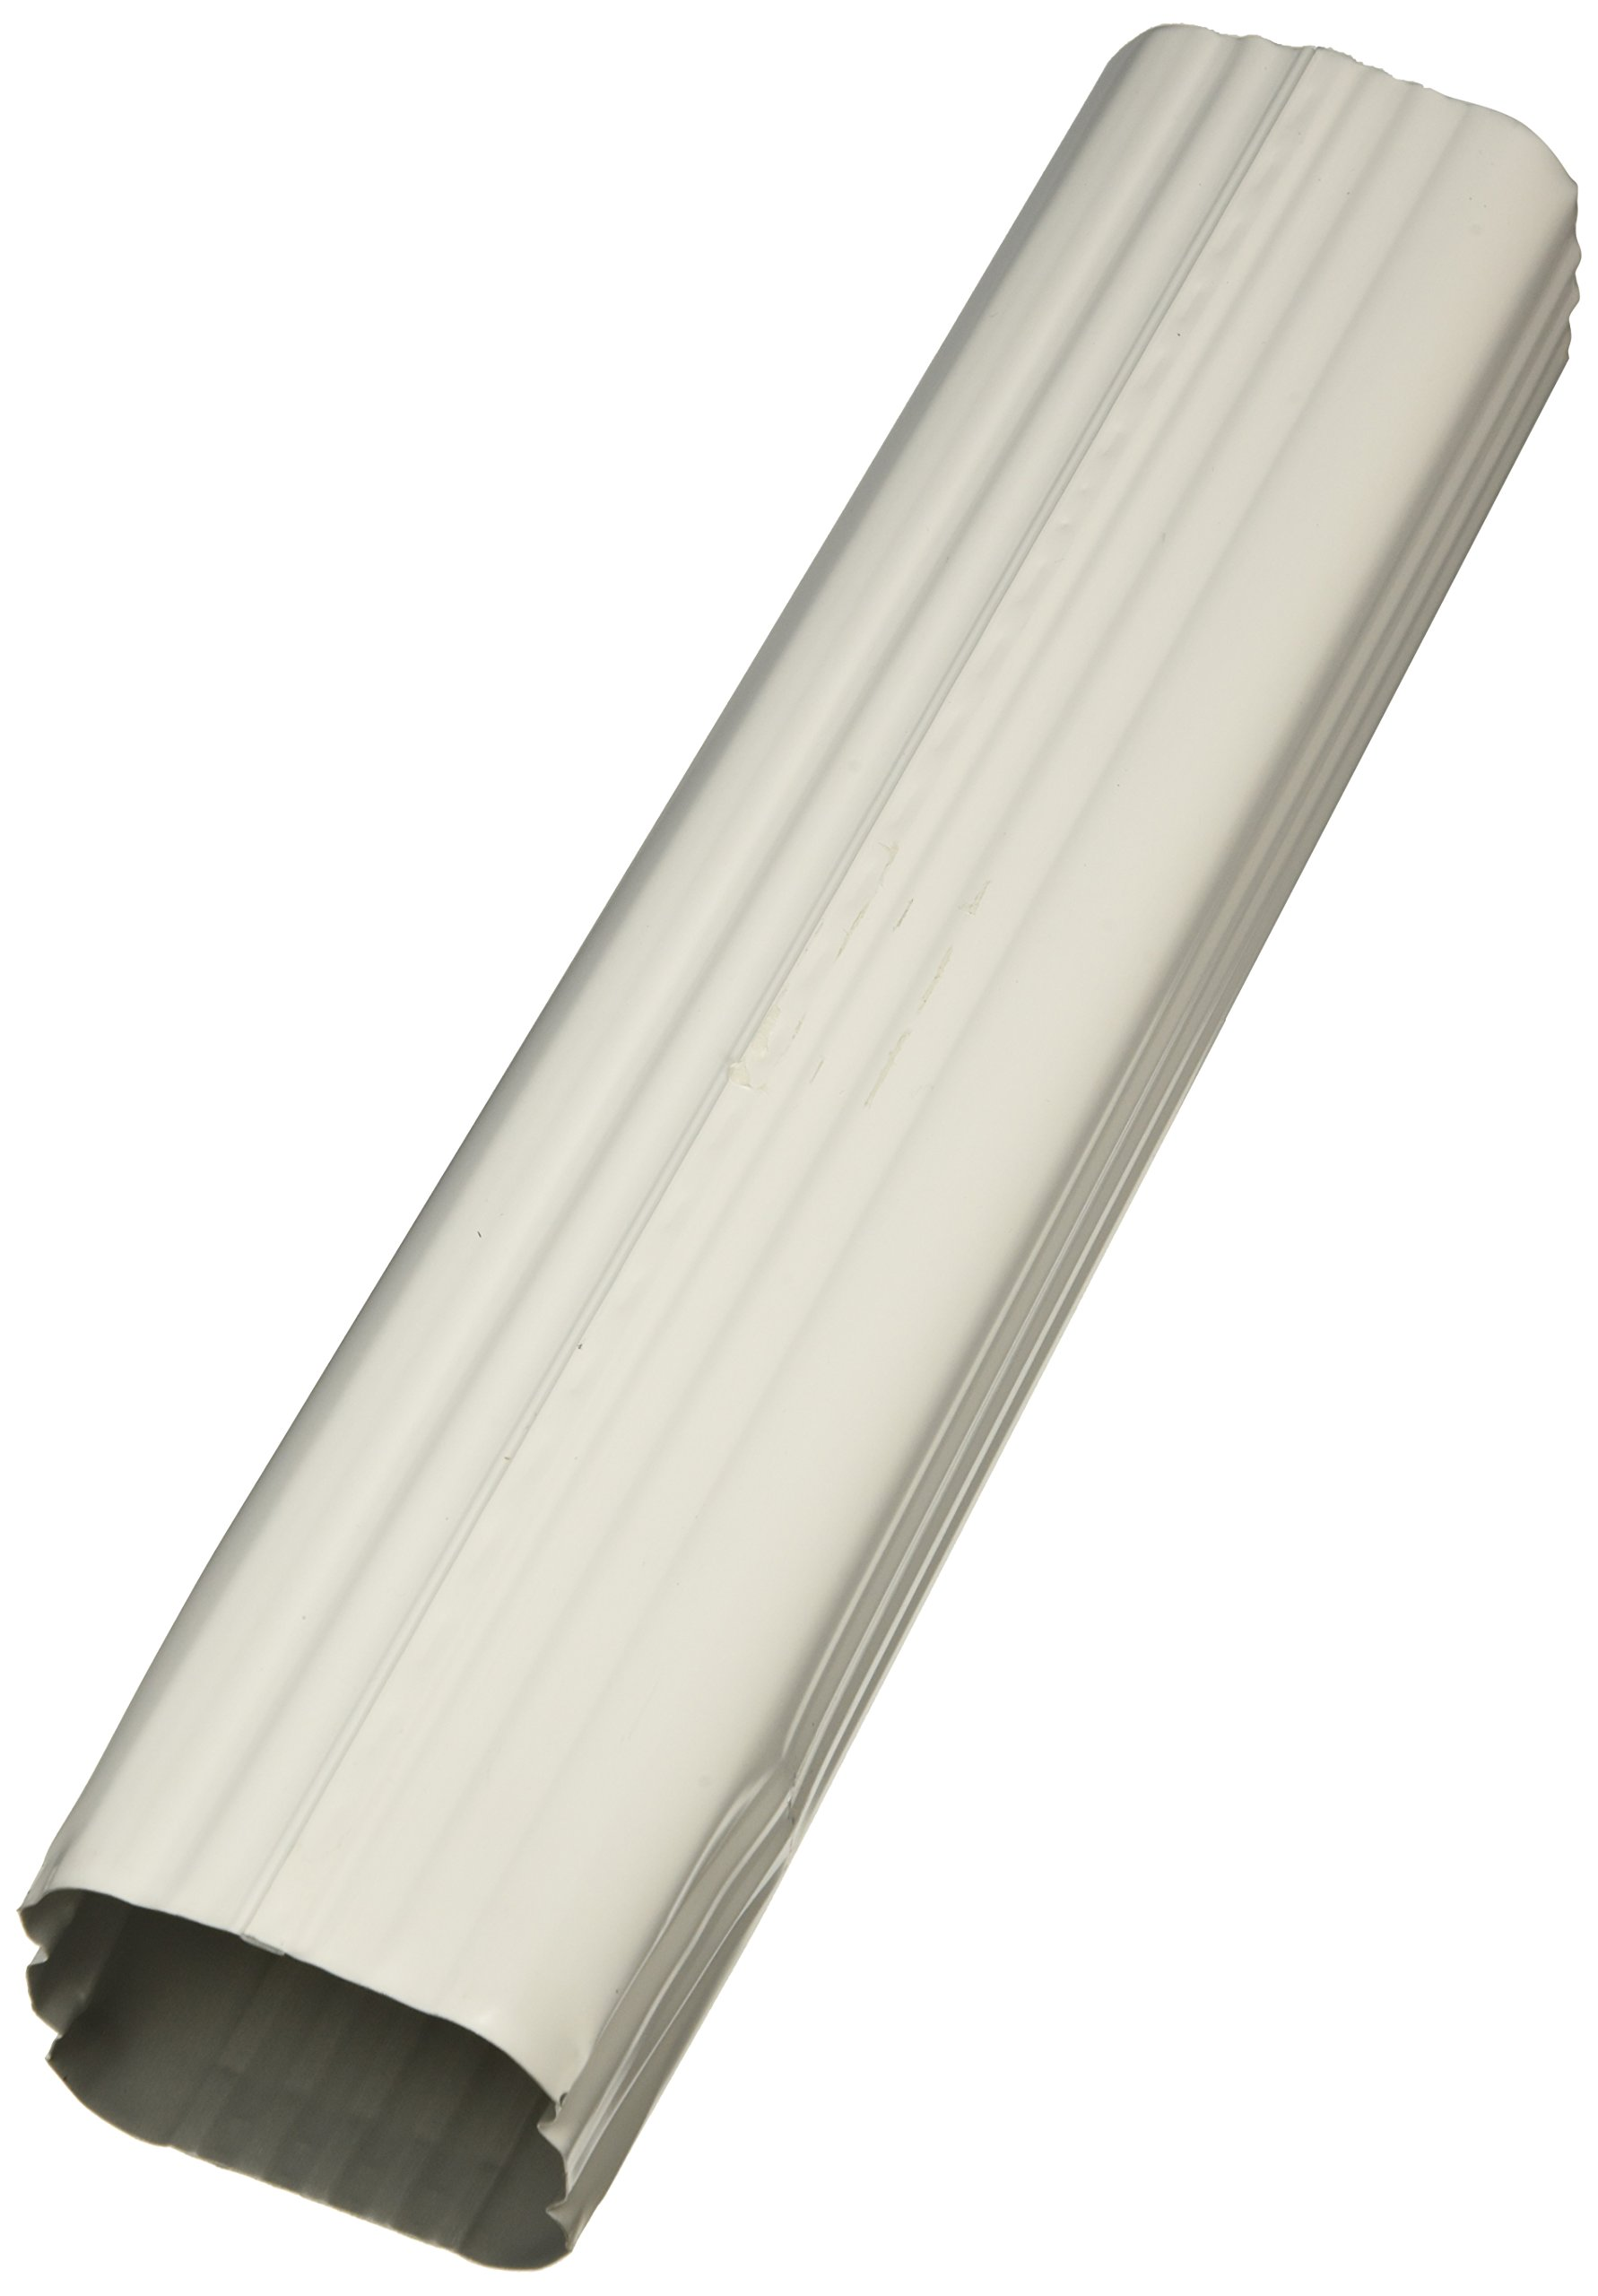 AMERIMAX HOME PRODUCTS 27075 15-Inch Downspout Extension, White